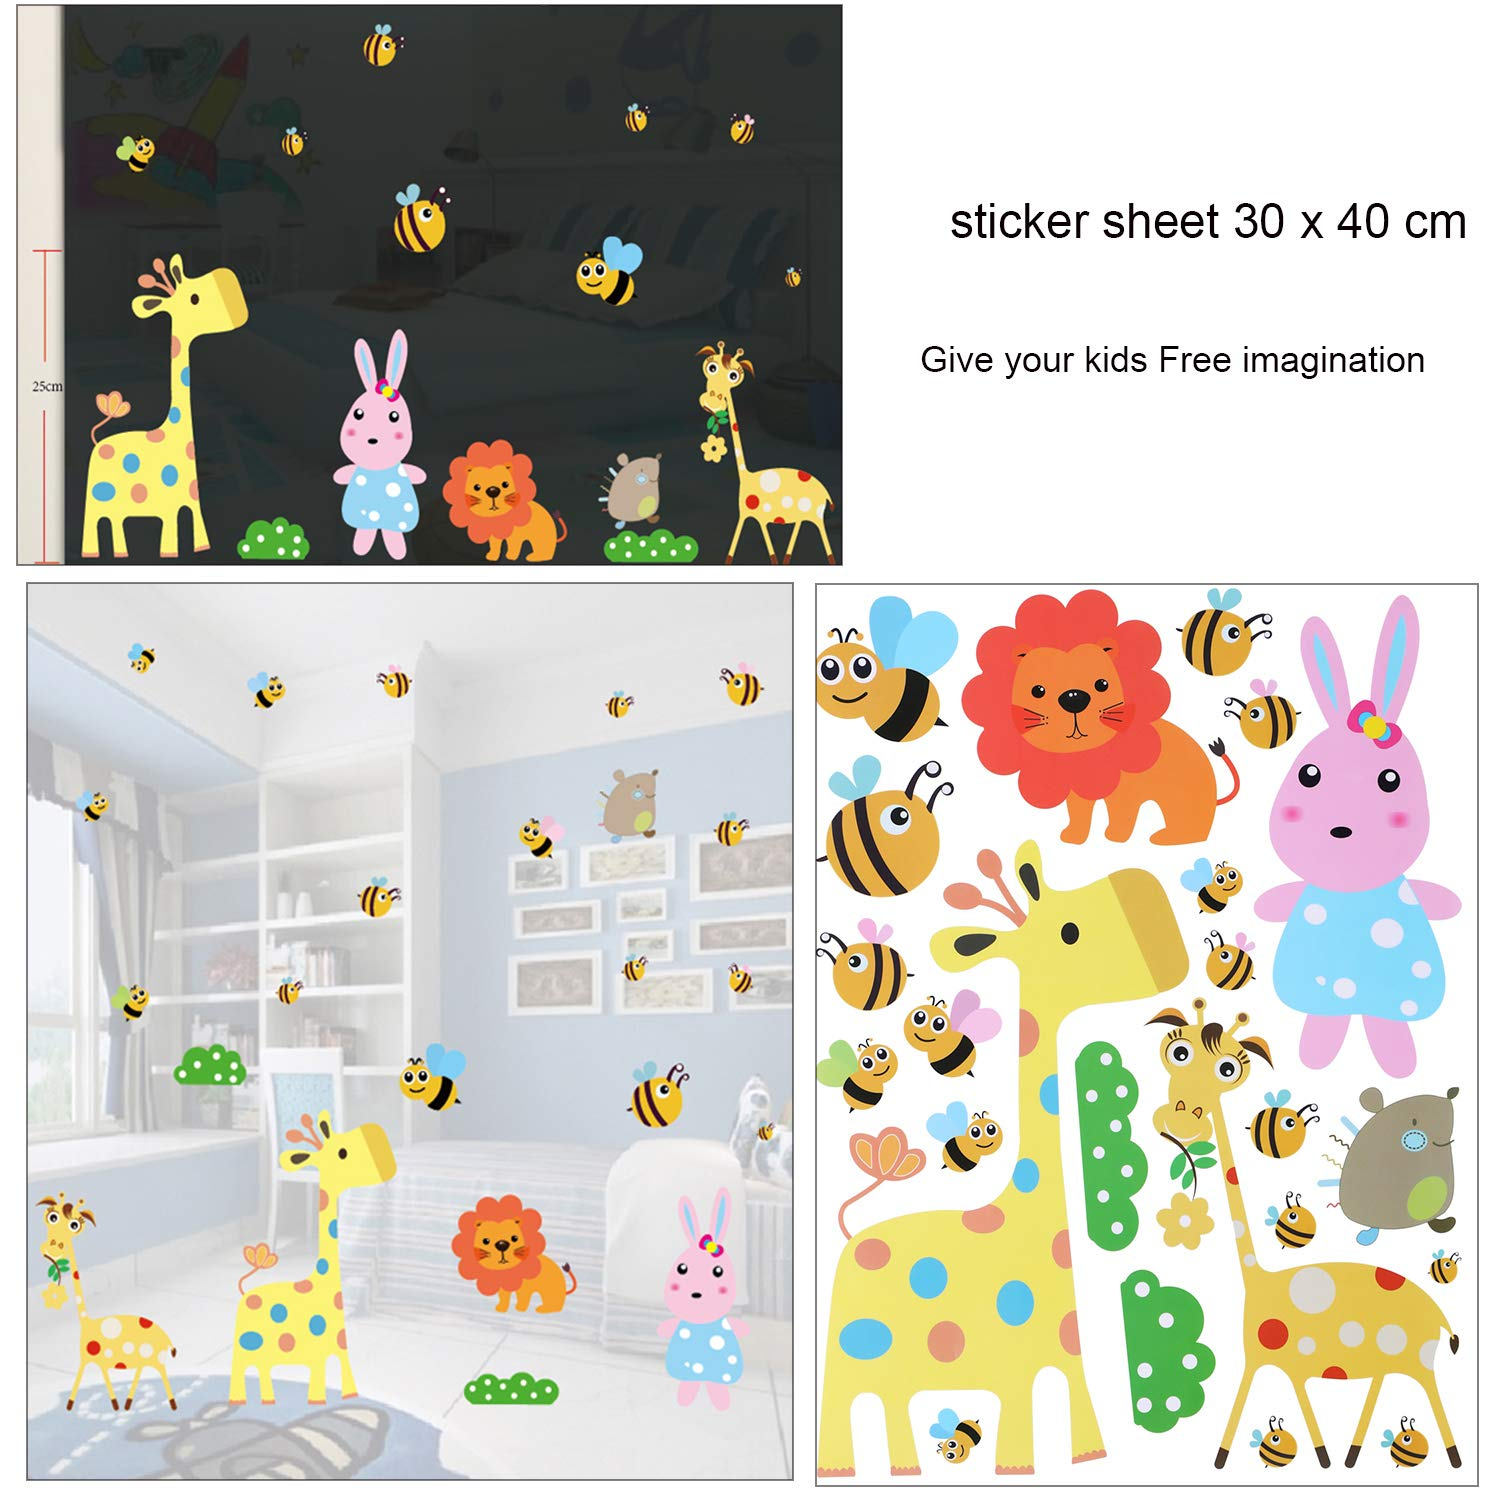 3 Big Sheet Removable Space Bathroom Window Wall Sticker Decals Vinyl Decoration for Childrens Room Nursery Party Favors Supplies OOTSR Jungle Animal Window Sticker Bug Bird Decal